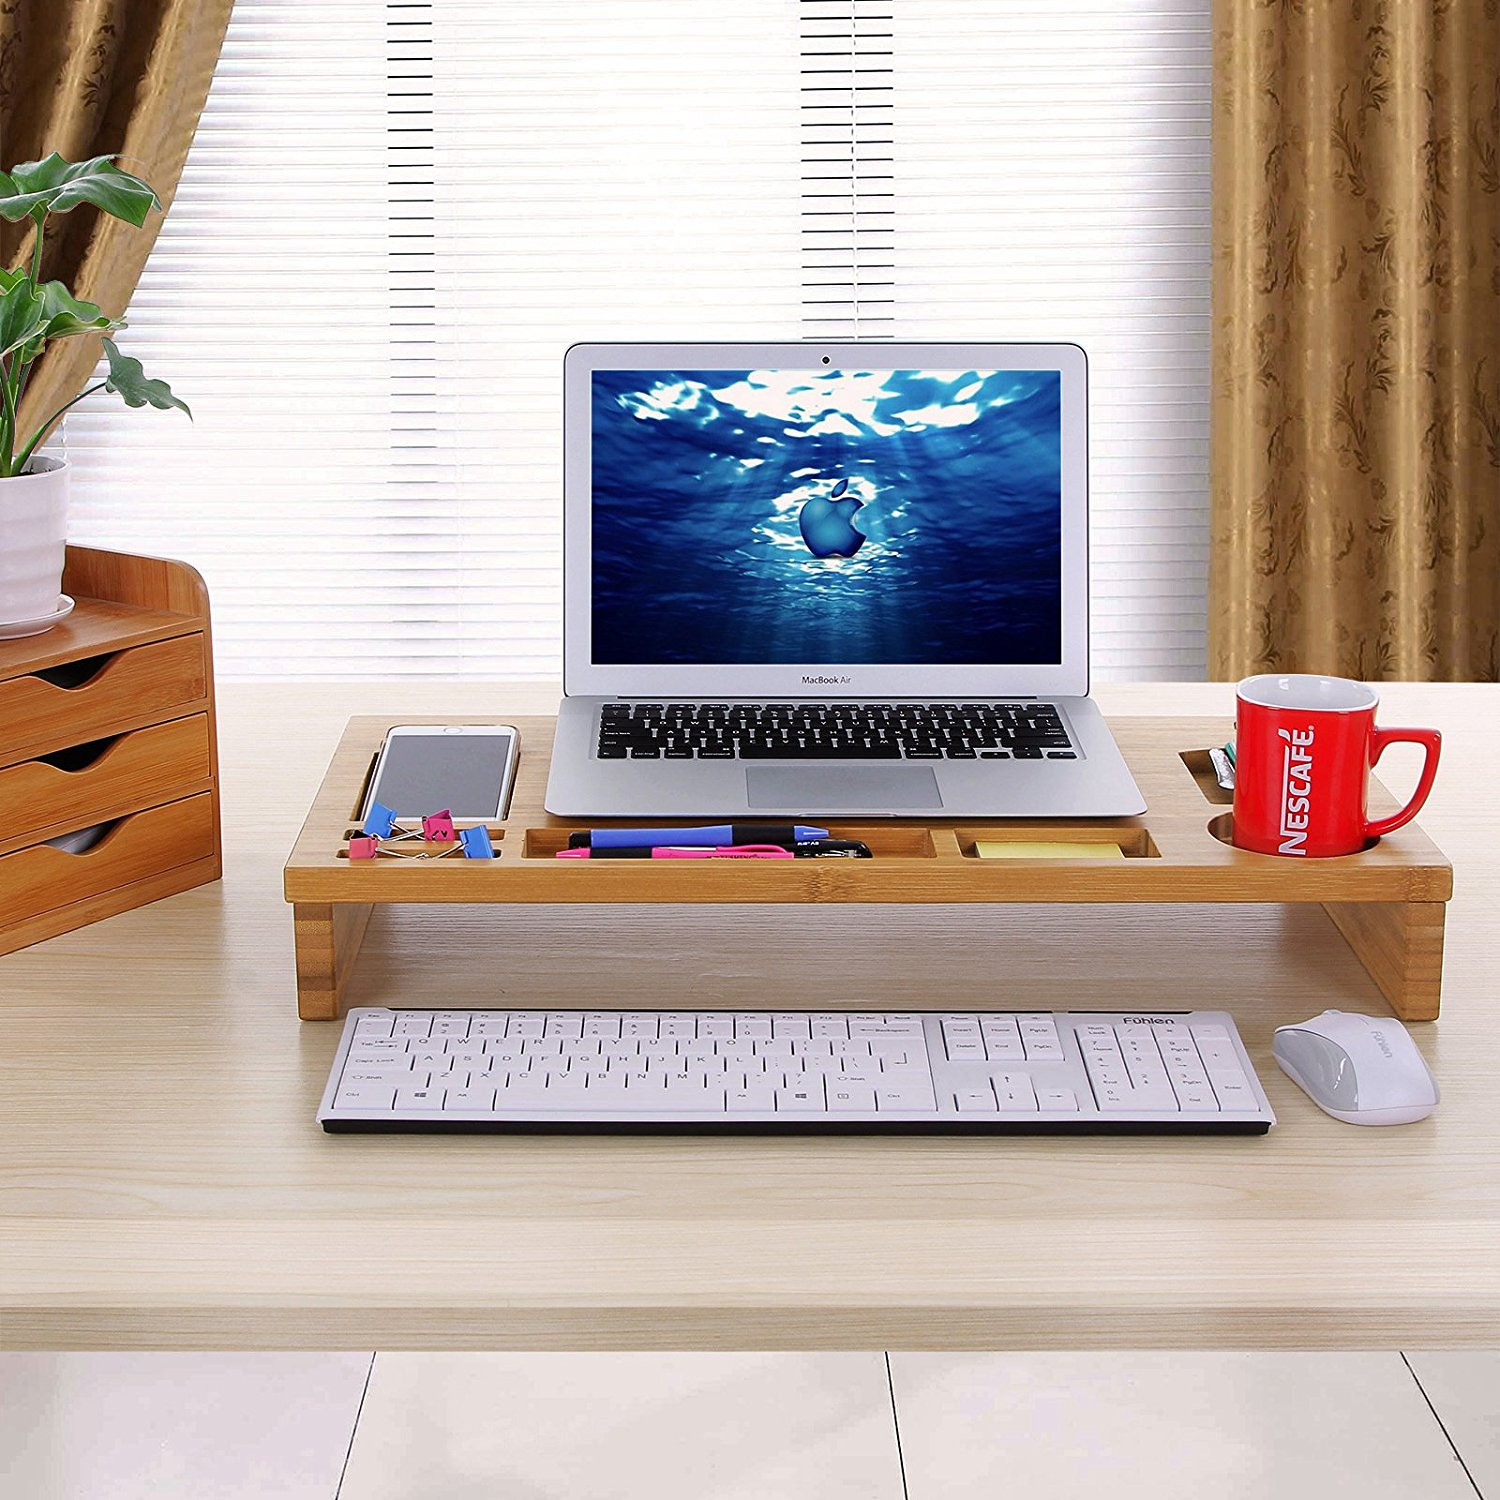 Mics Bamboo Monitor Stand Riser With Storage Organizer Laptop Cellphone Tv Printer Desktop Container Ulld201 Com